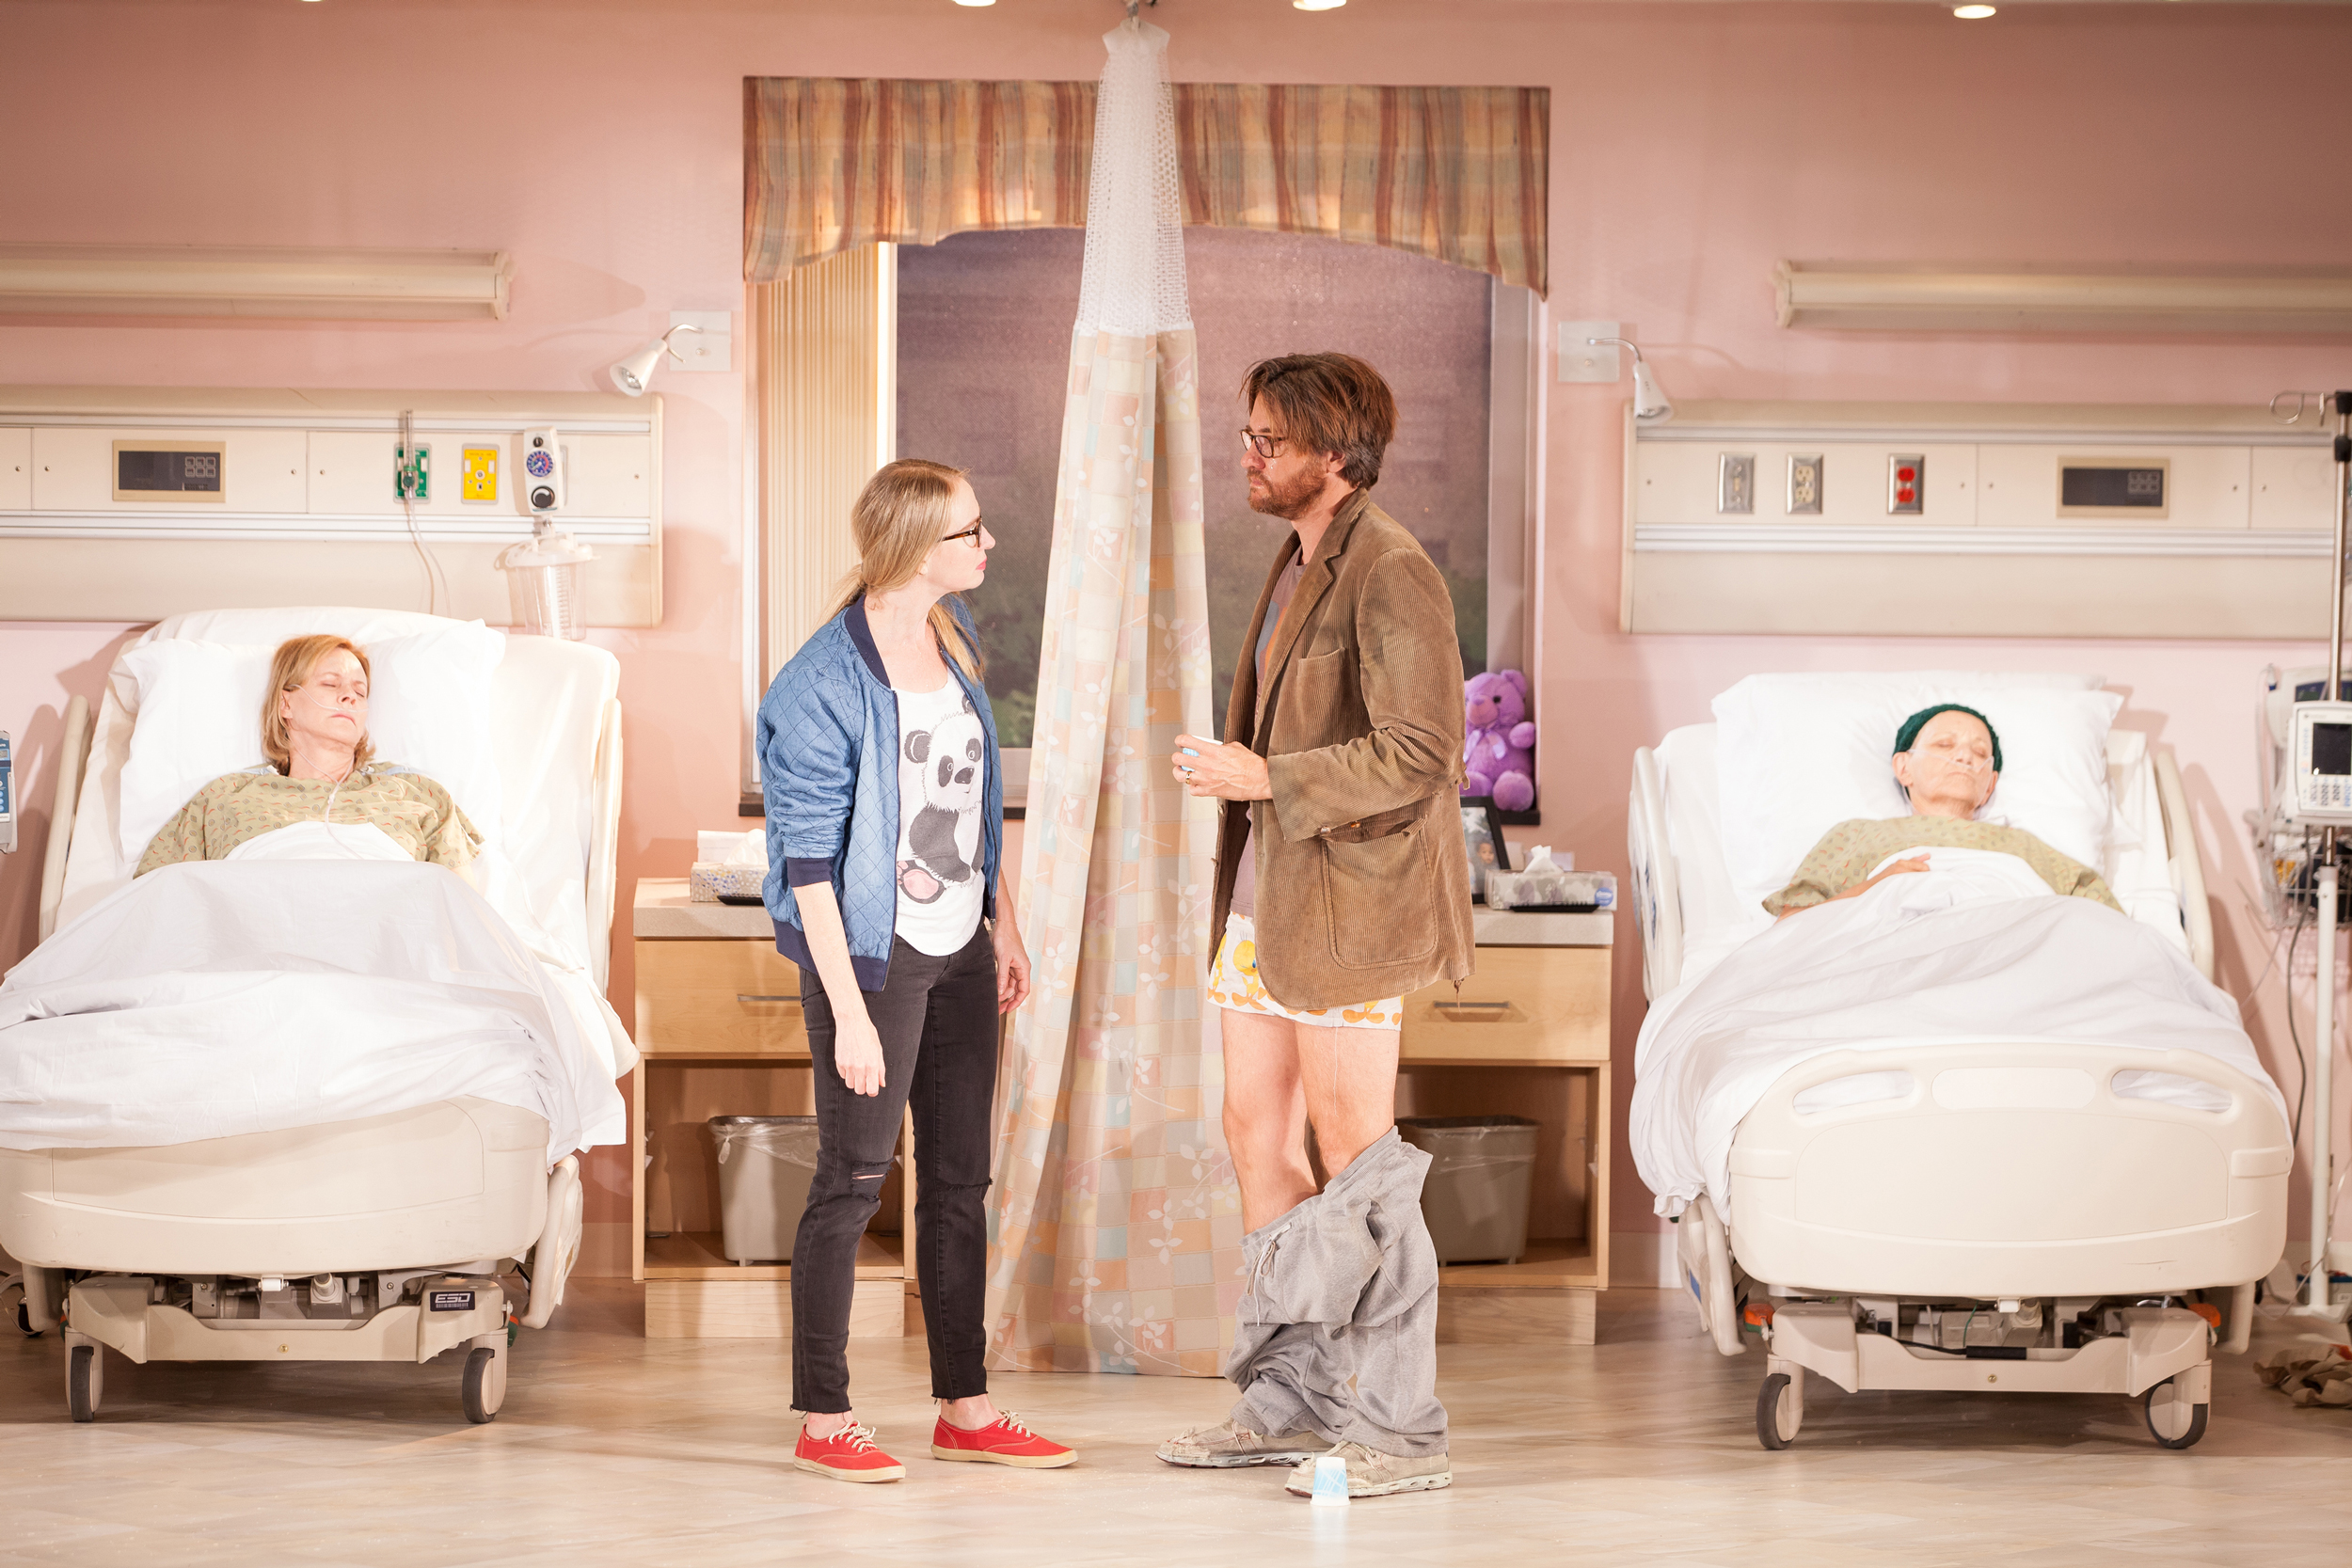 Theater Review: A FUNNY THING HAPPENED ON THE WAY TO THE